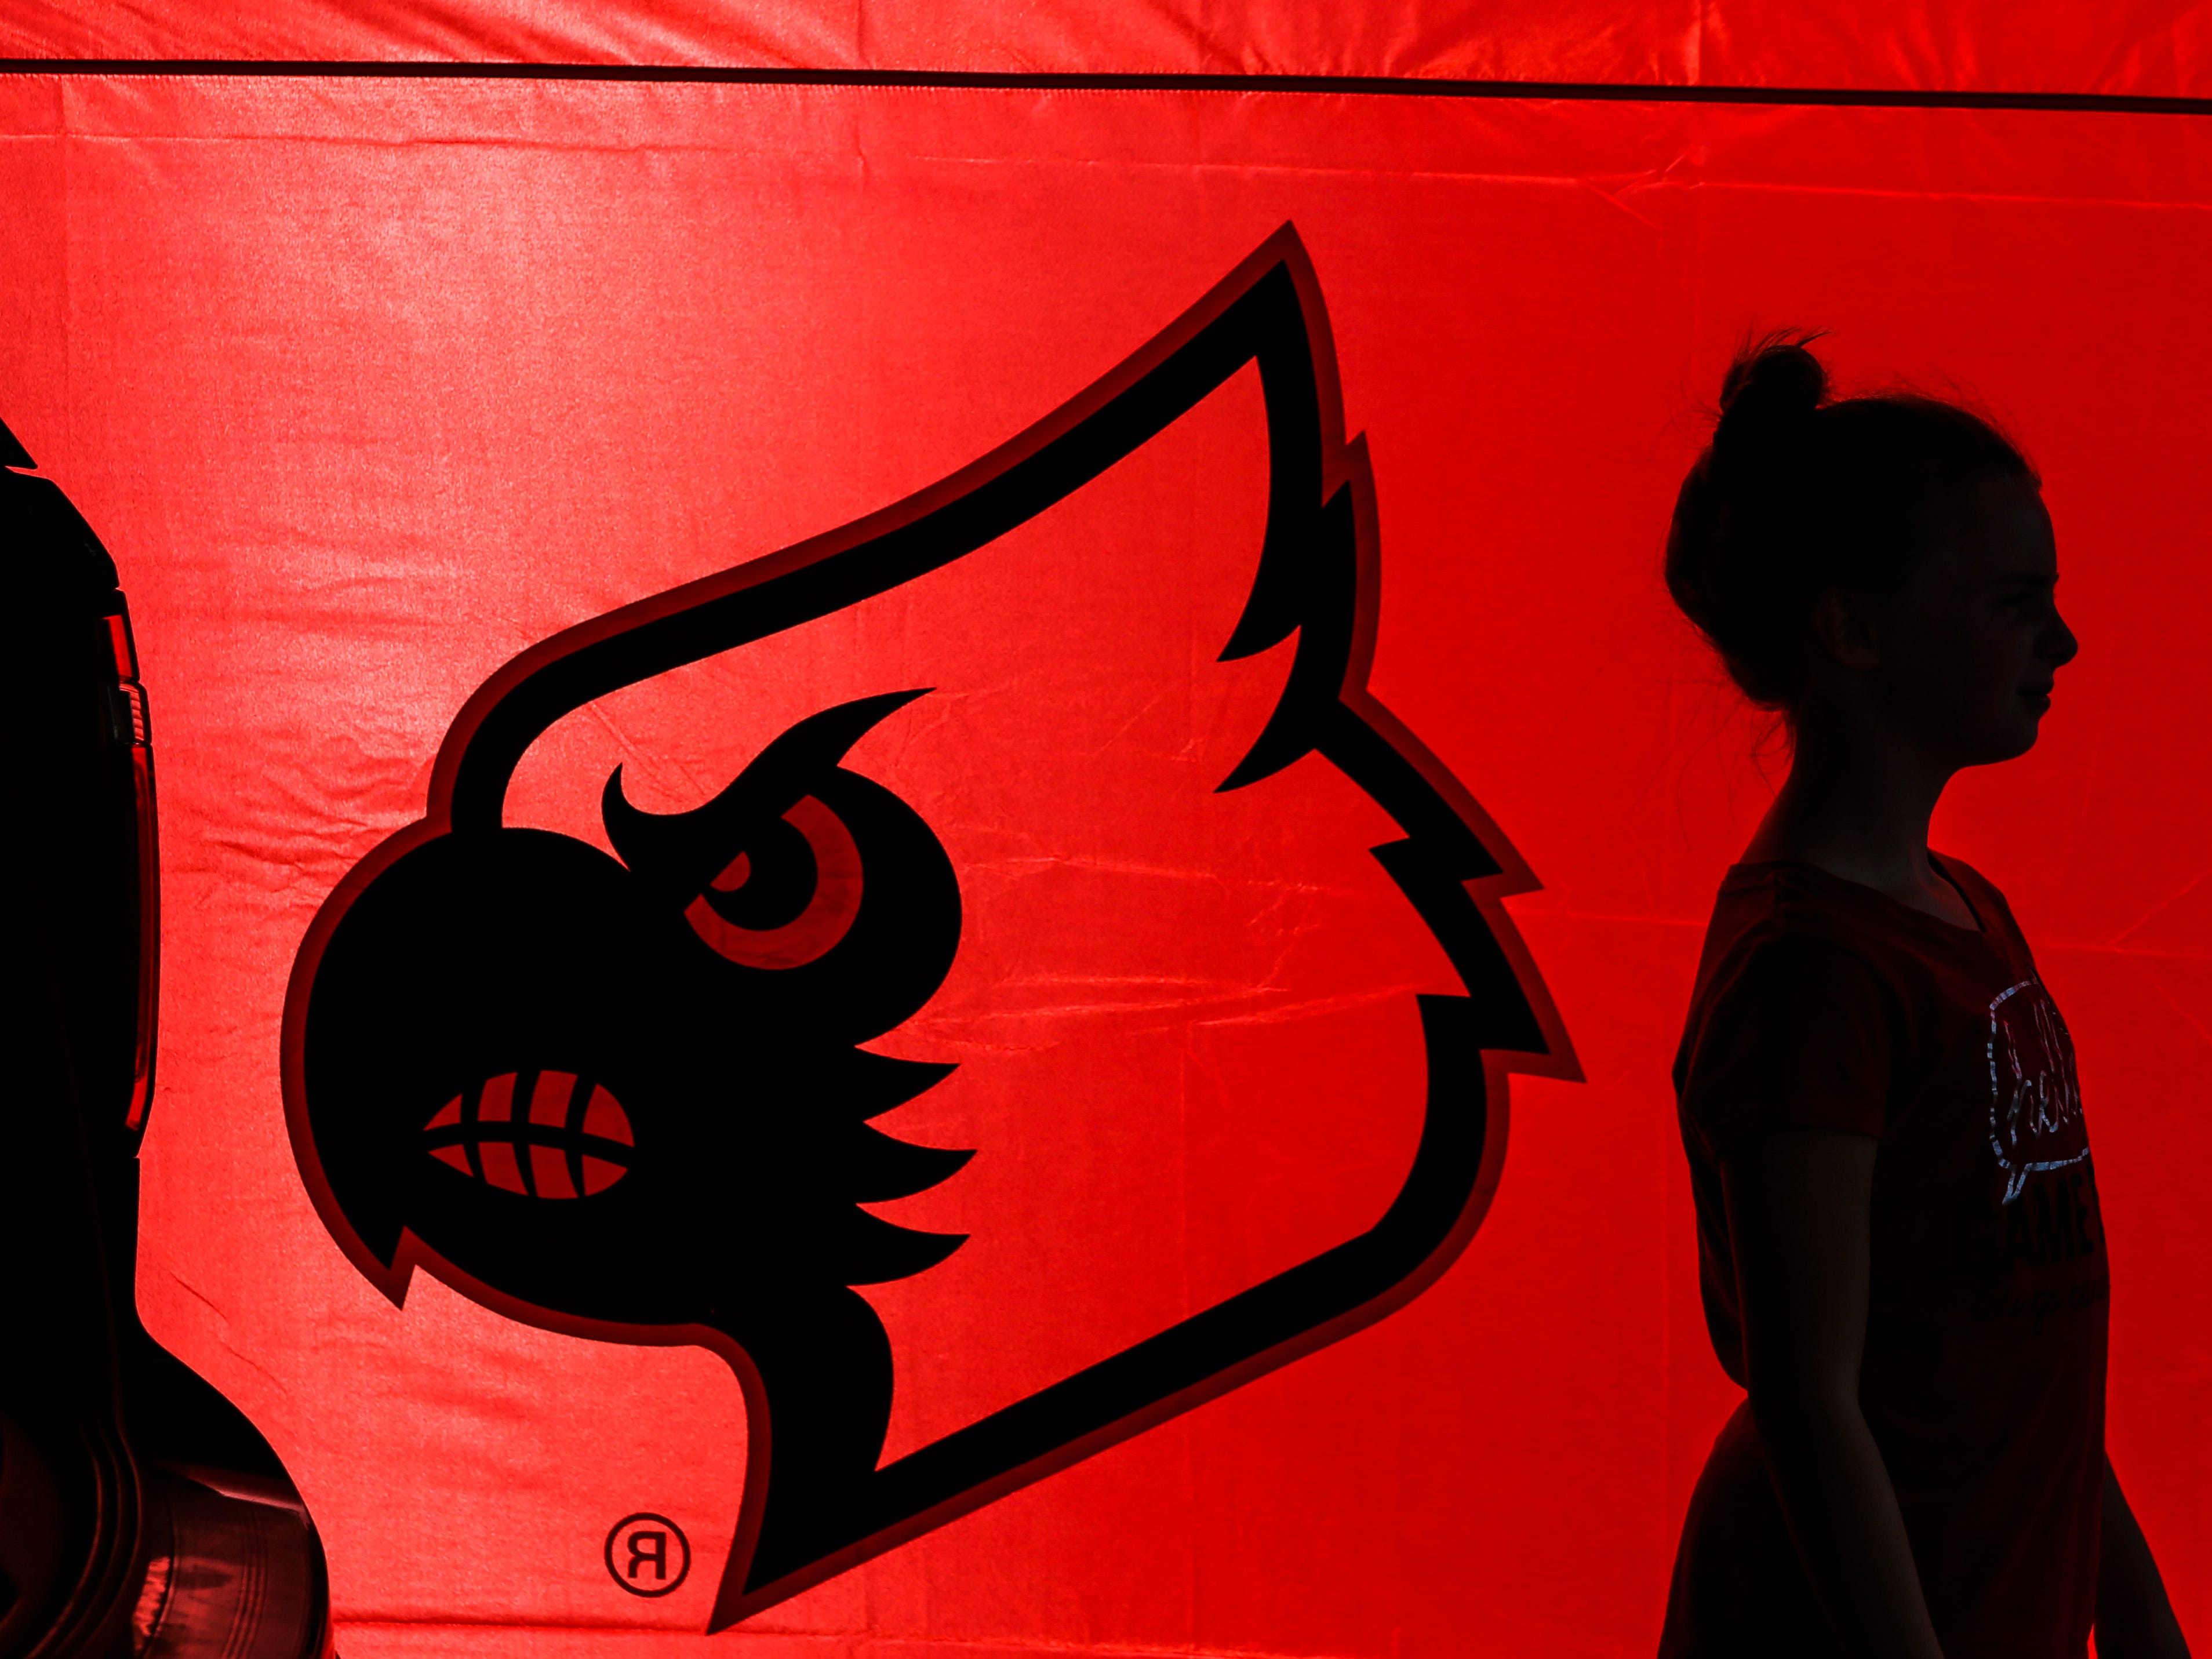 Kaleigh Kaufman, 10, stands in her family's tailgate tent as she waits before the Louisville-Western Kentucky football game Saturday, Sept. 15, 2018.